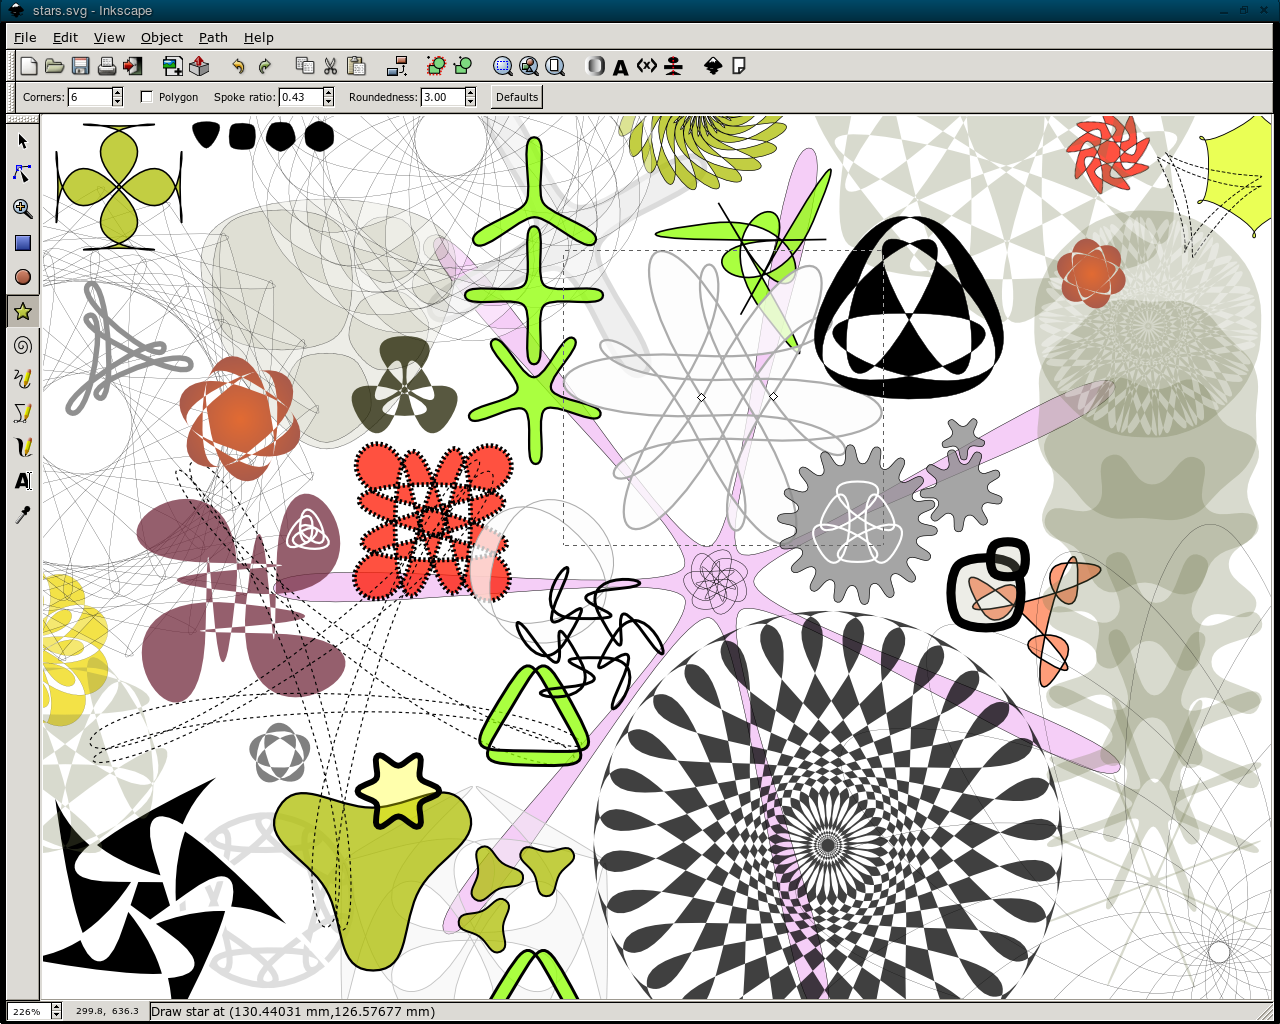 1280x1024 Free Vector Graphics Software Inkscape The Blog @ Bargain Printing